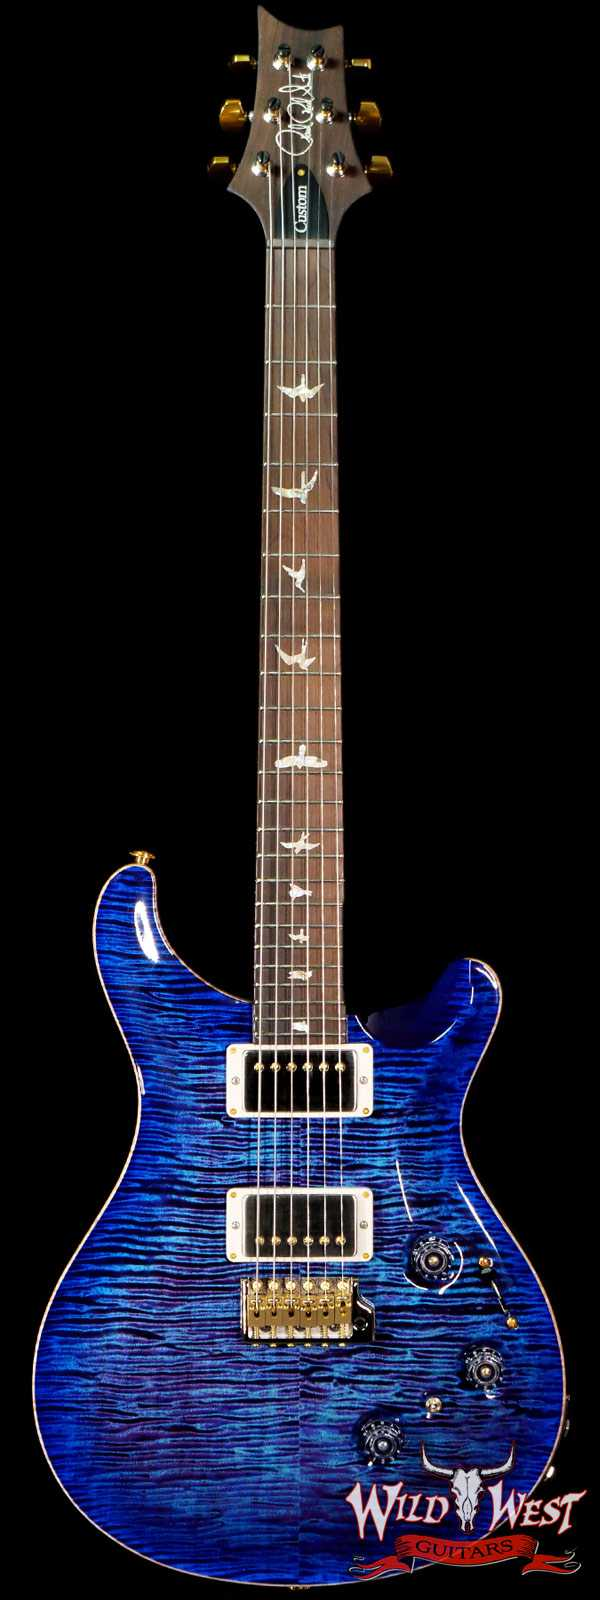 Paul Reed Smith Wood Library 10 Top Custom 24 Piezo P24 Flame Maple Neck Brazilian Rosewood Board Violet Blue Burst